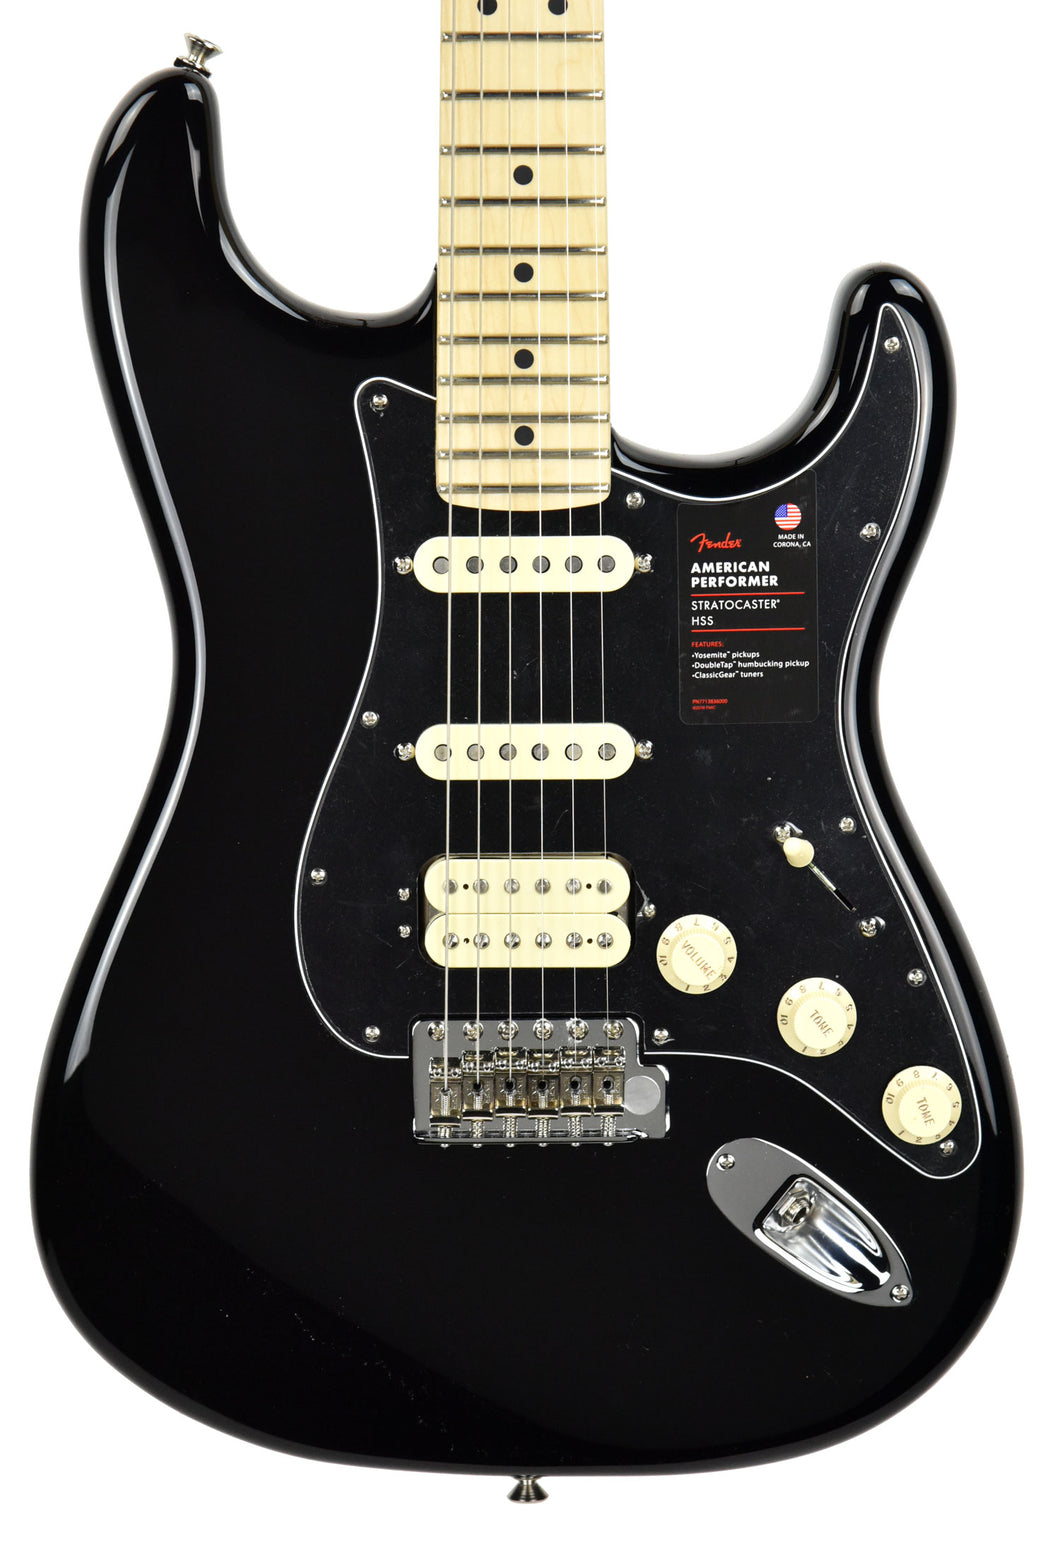 Fender American Performer Stratocaster HSS in Black US19046592 - The Music Gallery